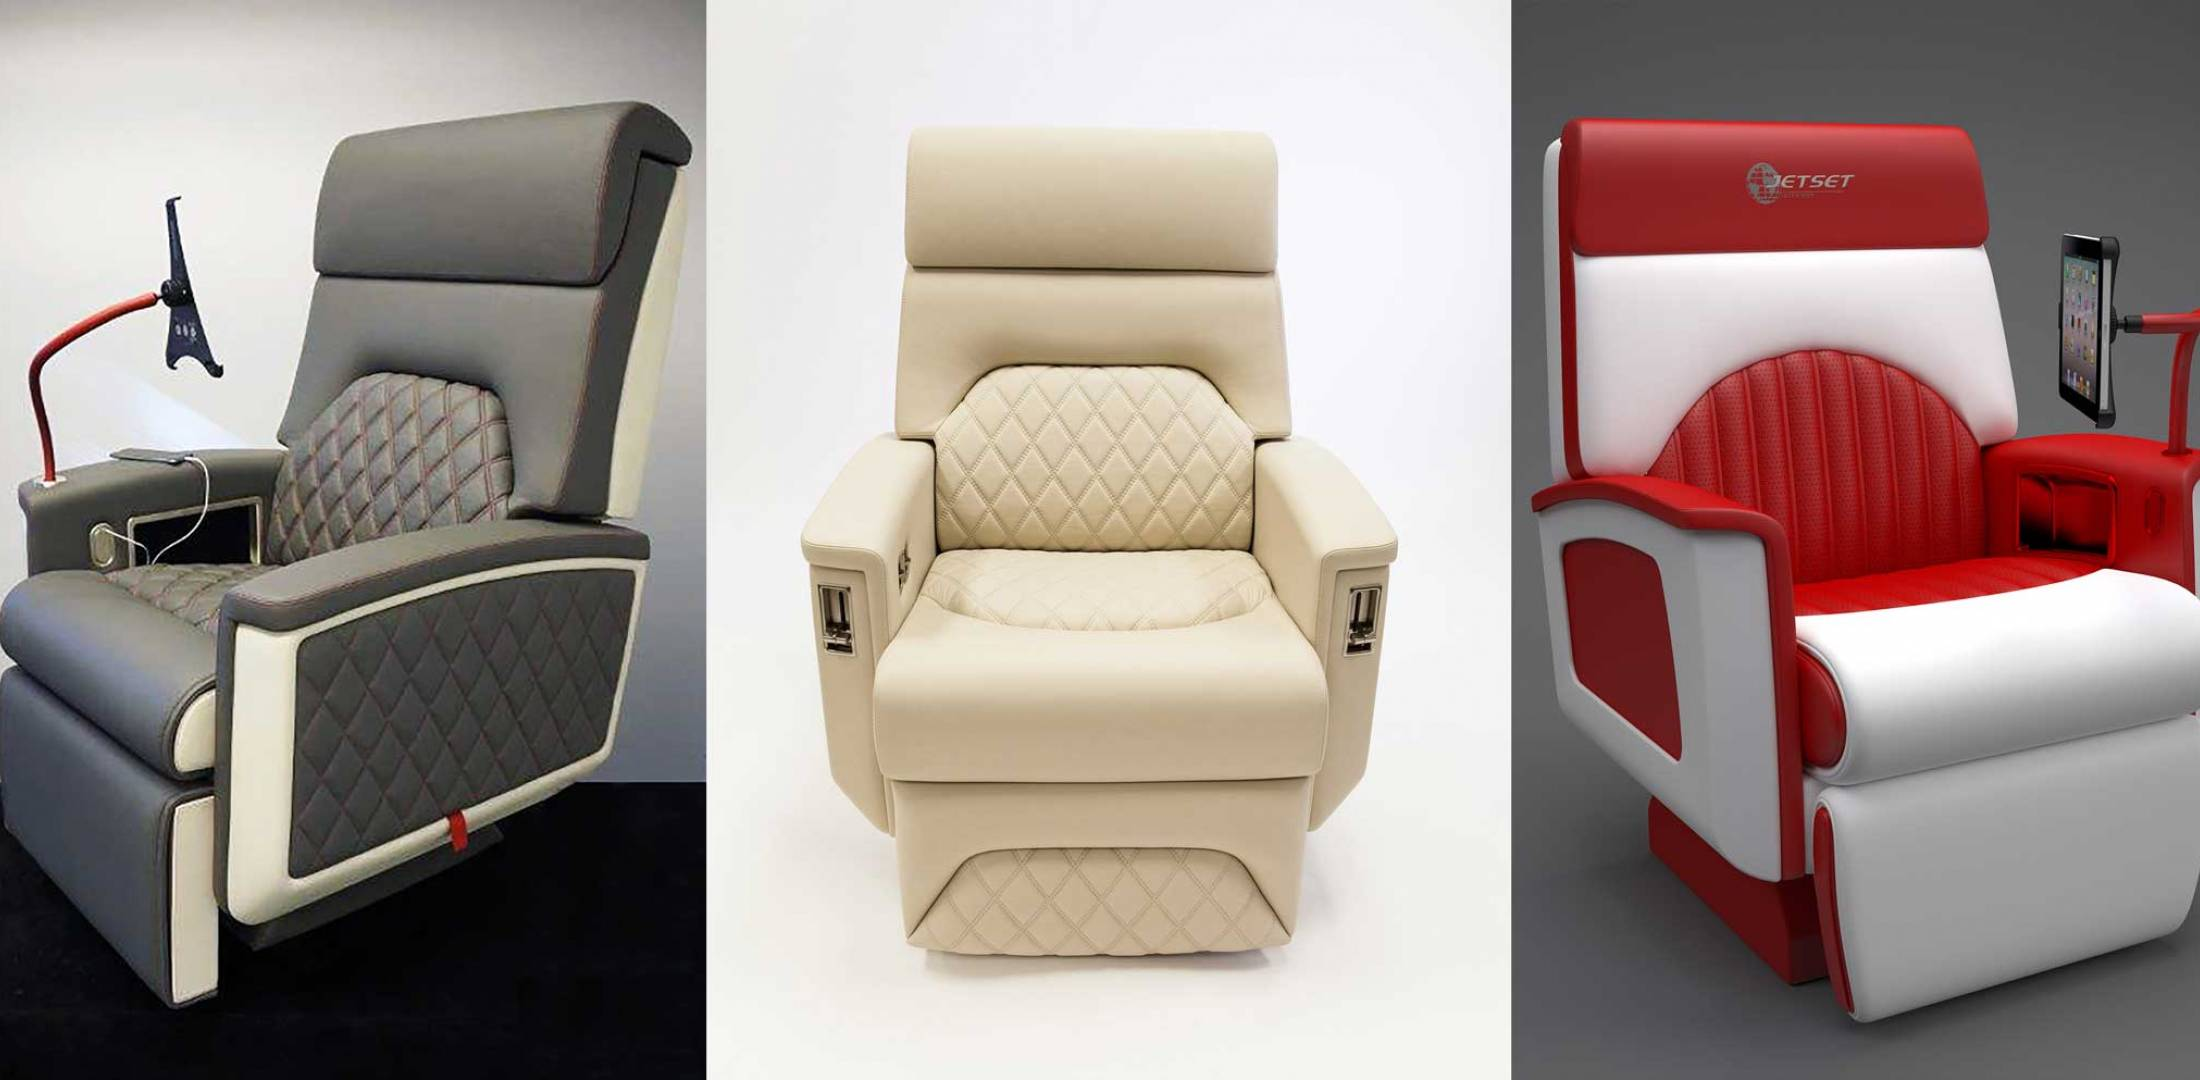 Signature Seating Series for Globals and Challengers